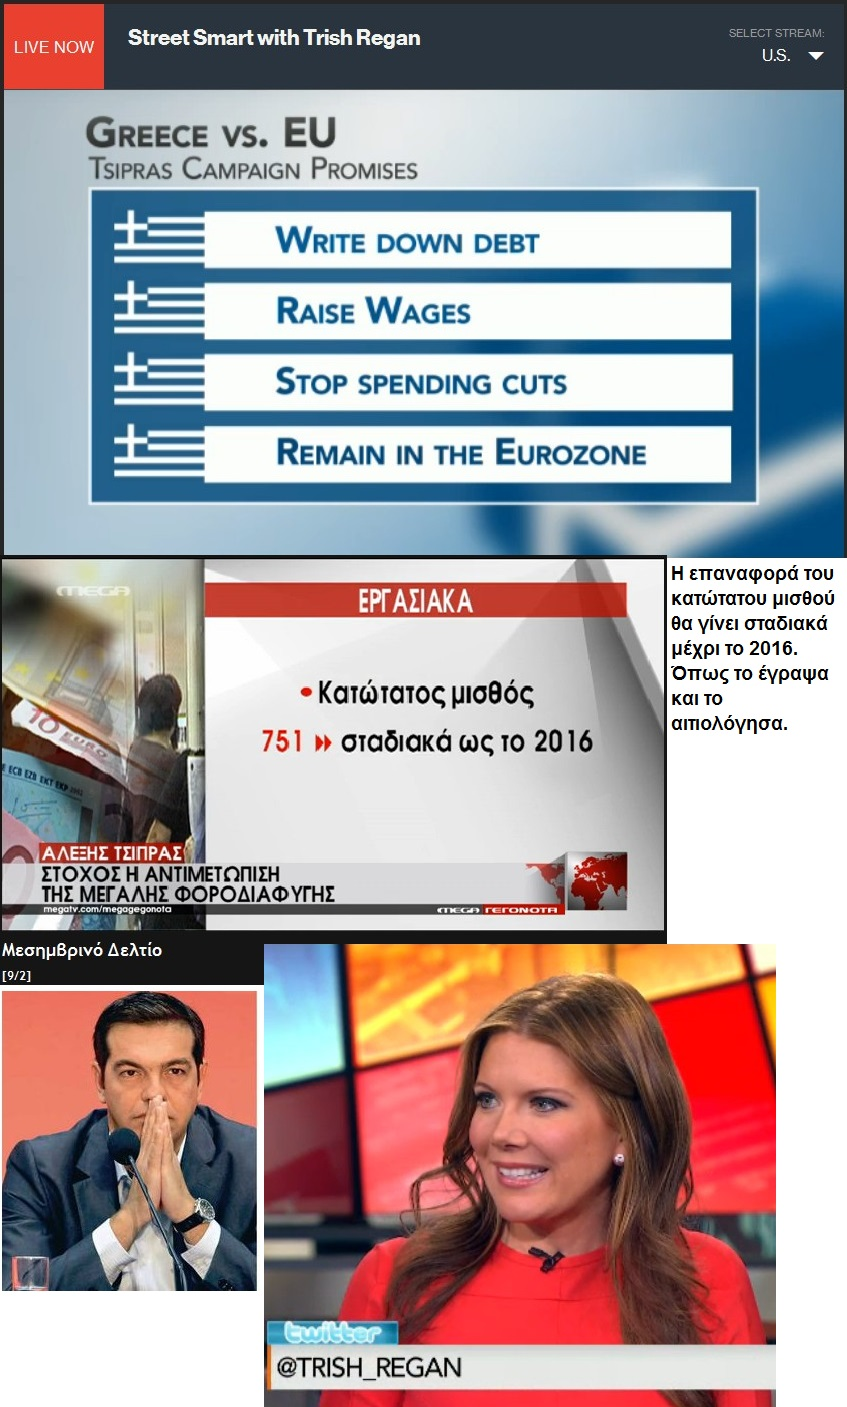 BLOOMBERG GREECE TSIPRAS CAMPAIGN PROMISES SYRIZA PROGRAMATIKES DHLOSEIS 01 090215